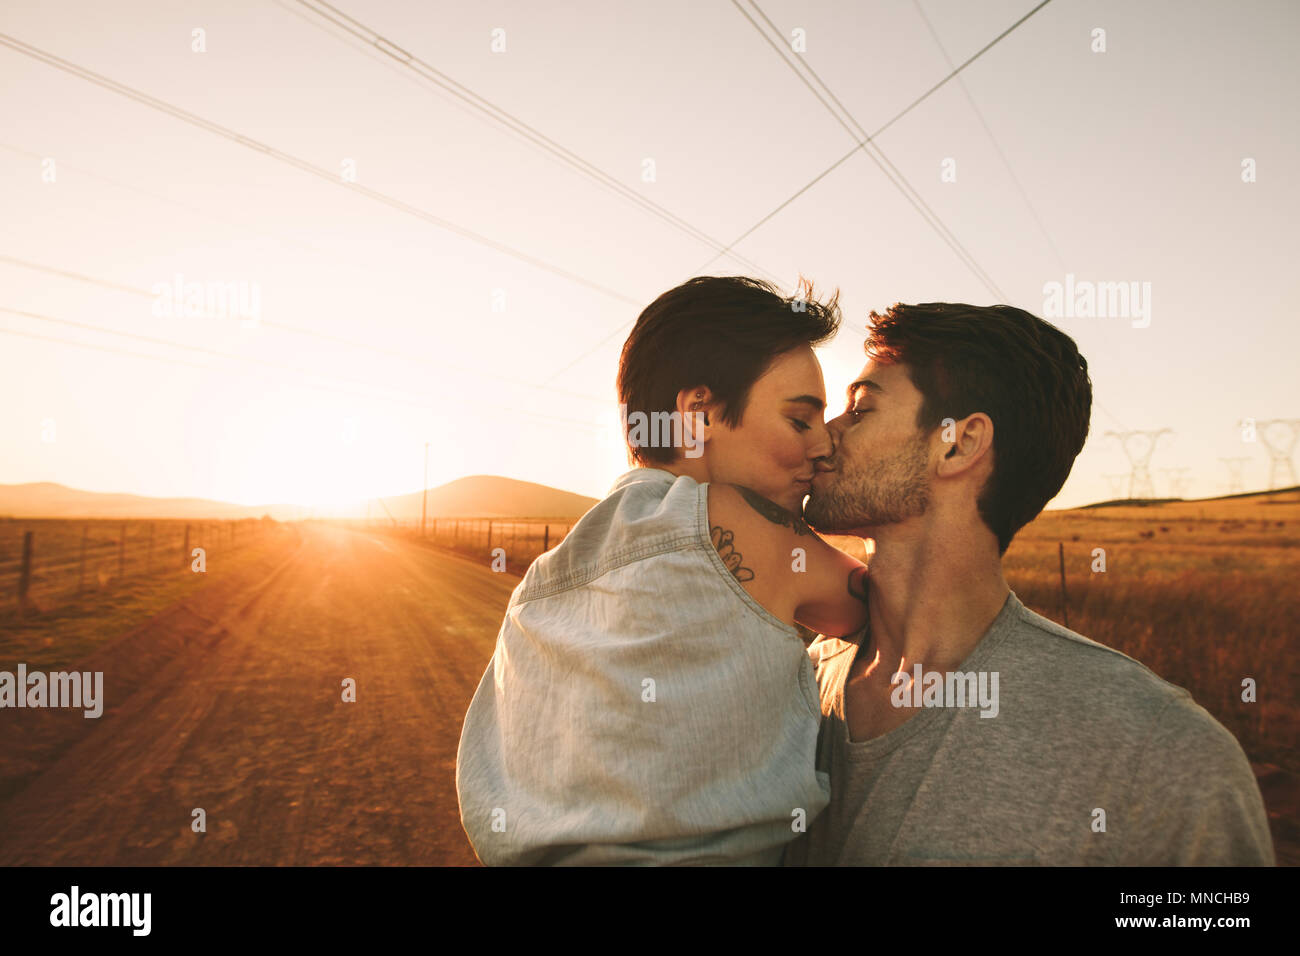 Couple kissing on a mud track highway in countryside. Romantic couple on the highway spending time together. - Stock Image